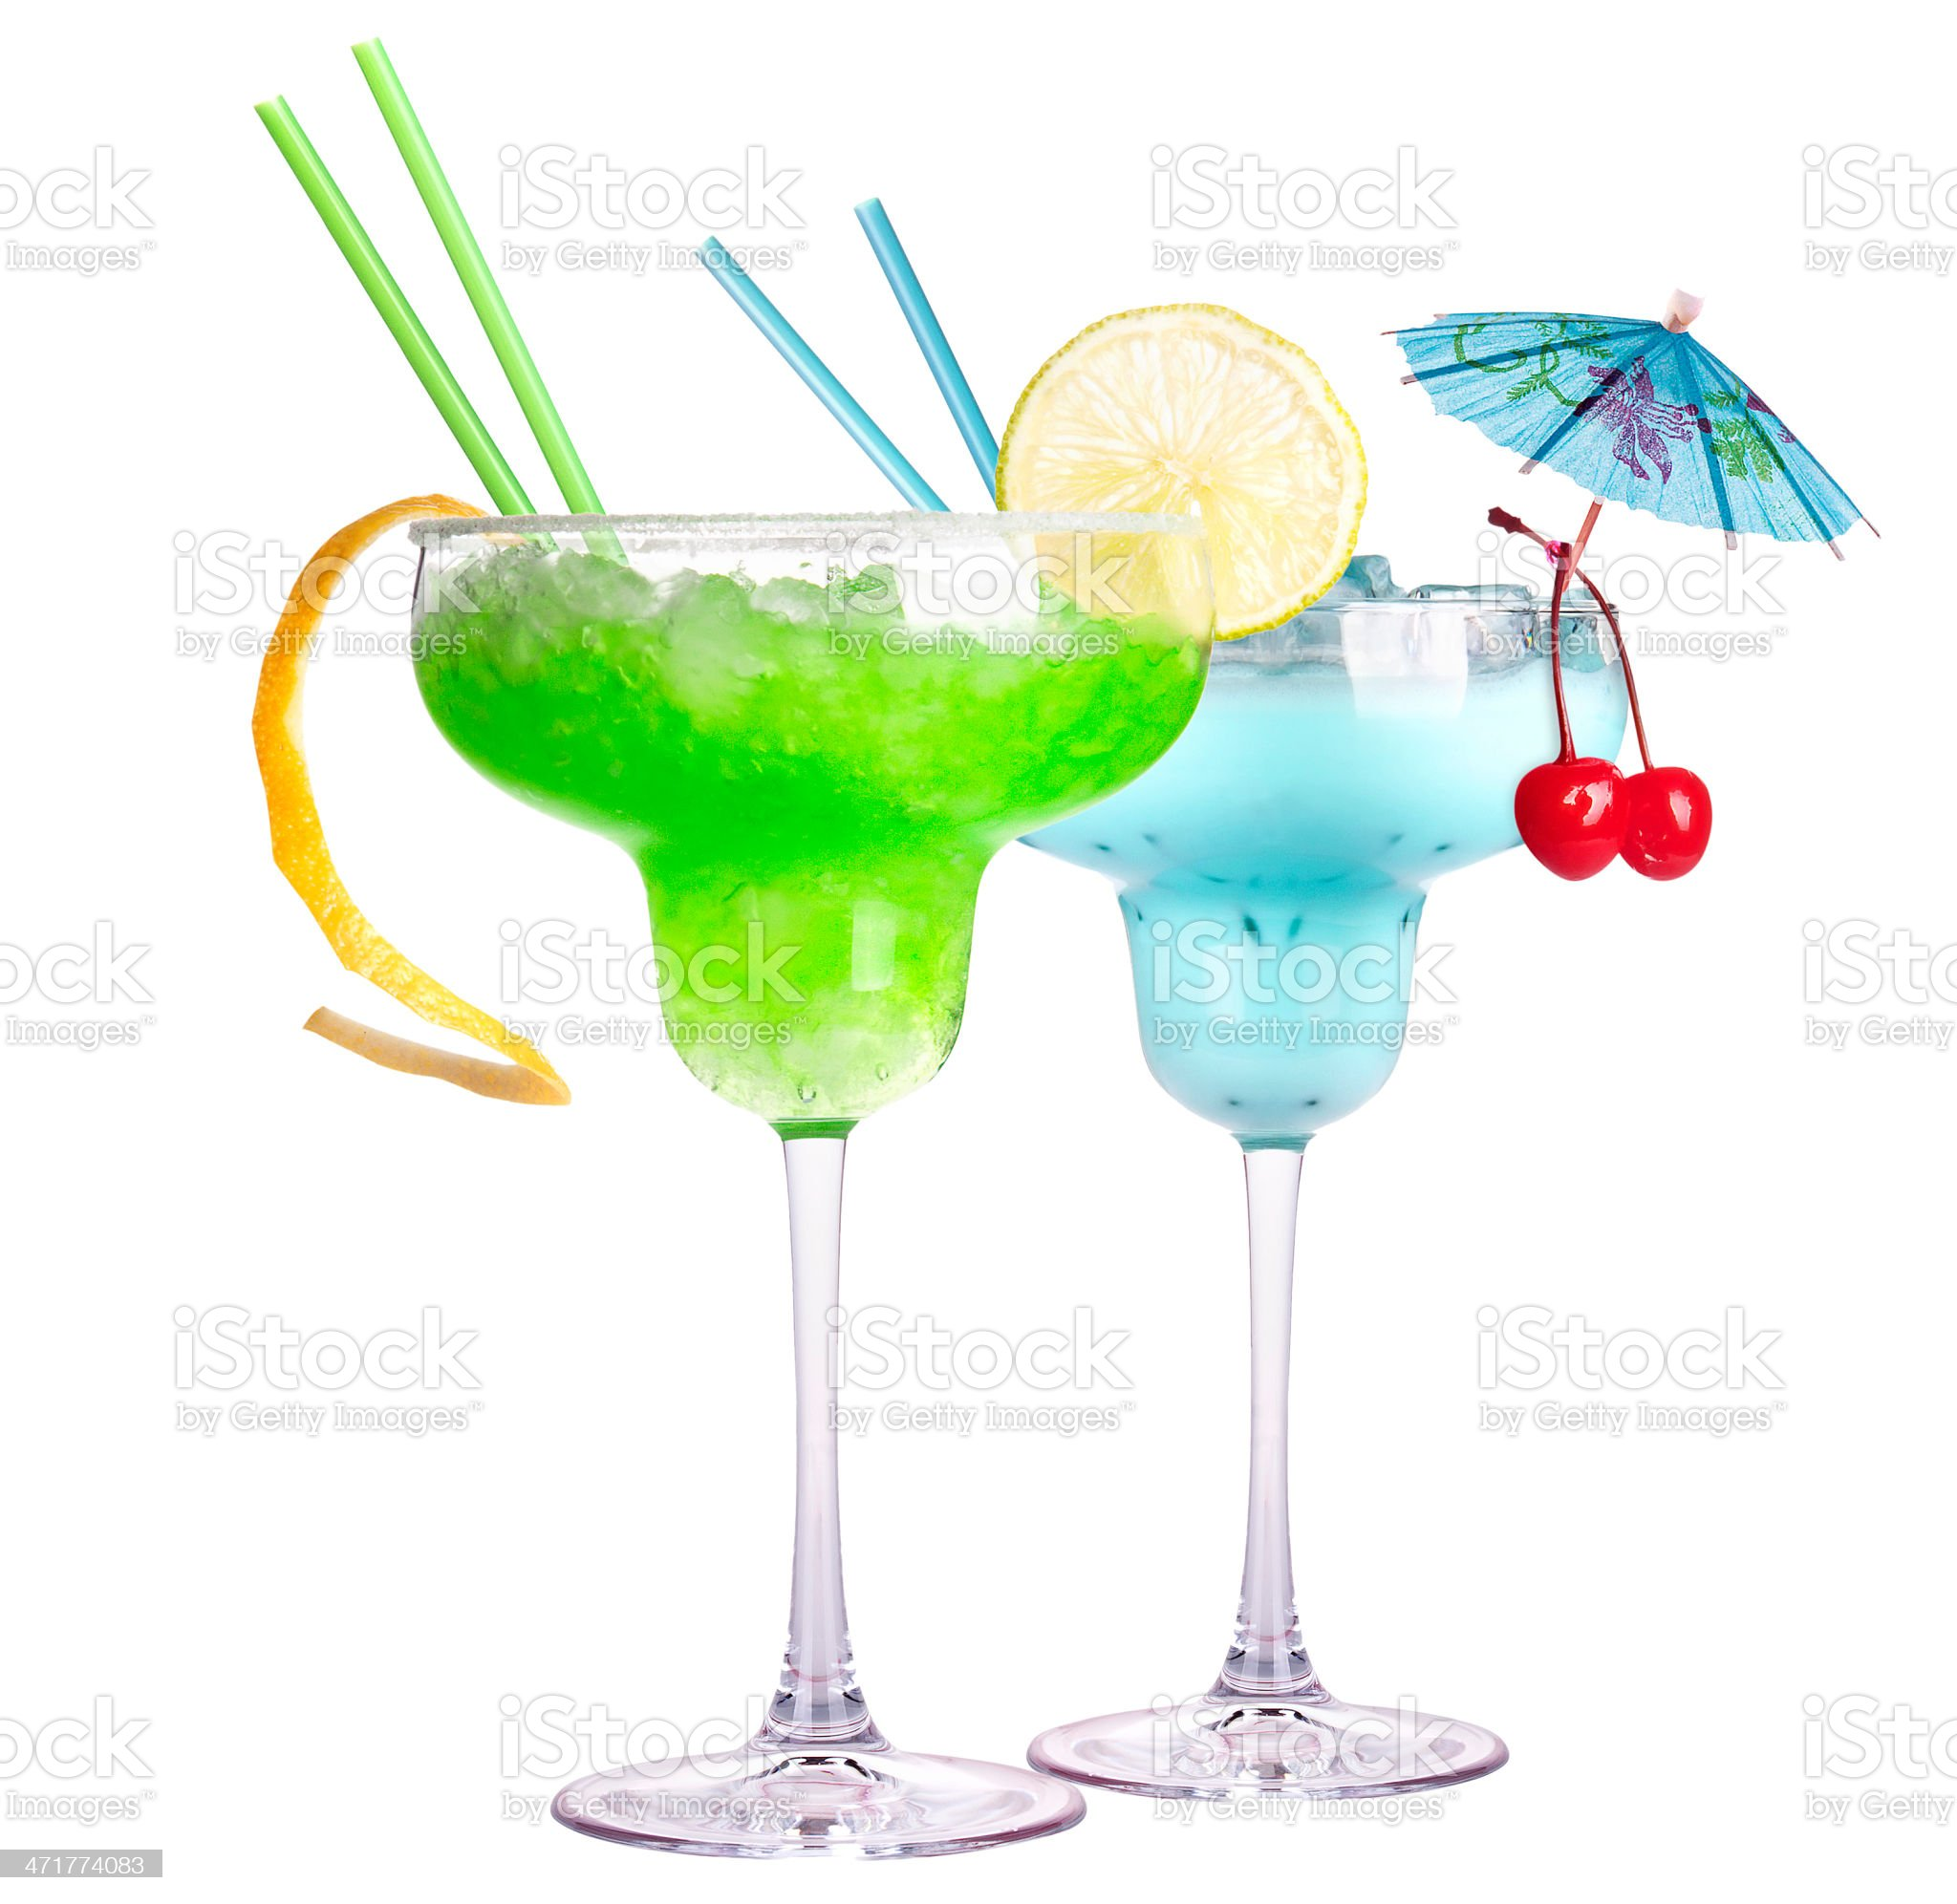 alcoholic exotic cocktail isolated royalty-free stock photo